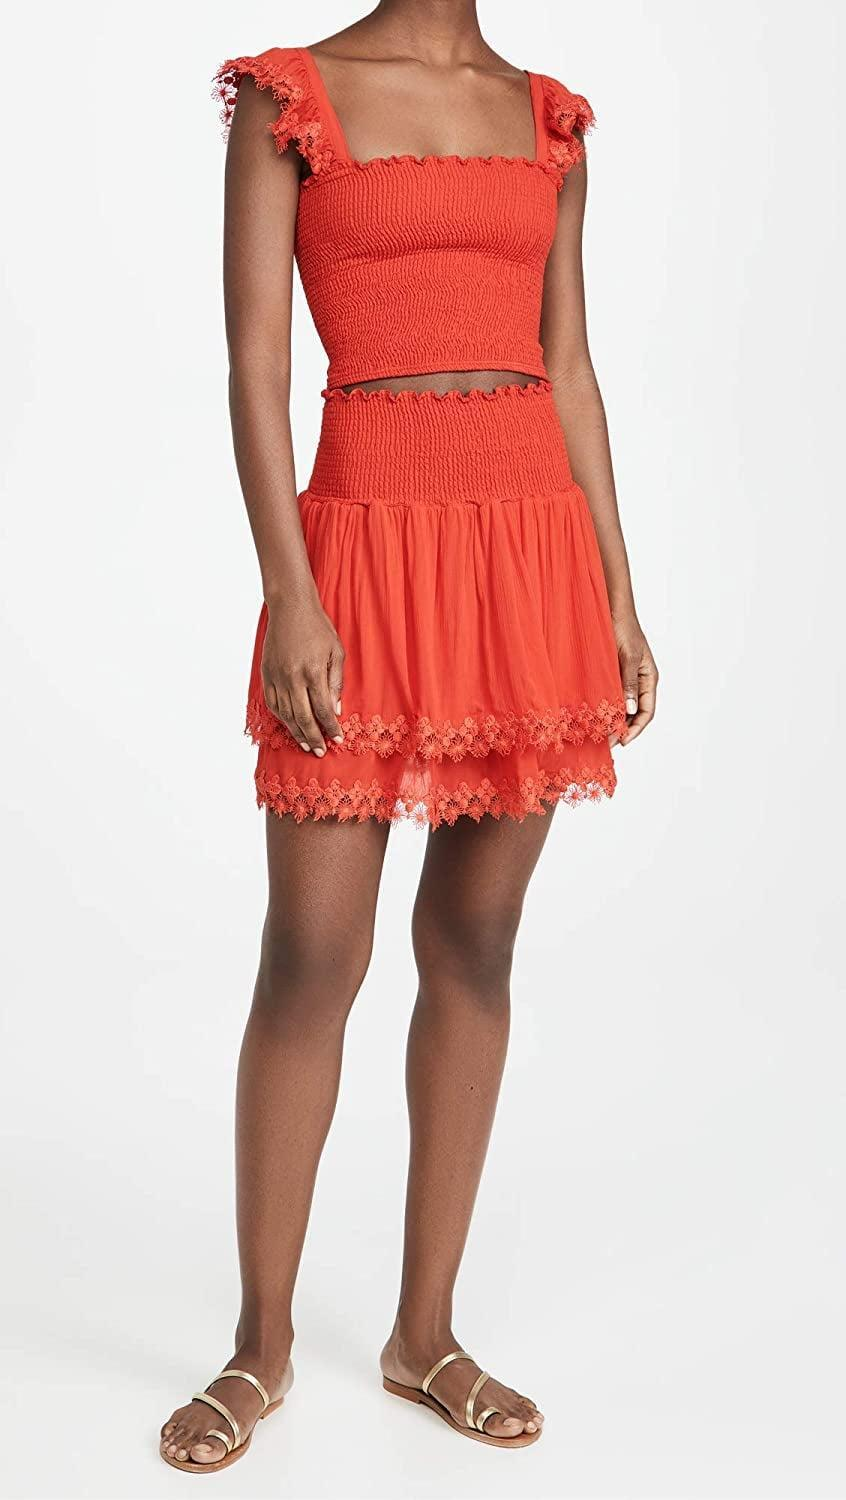 <p>You can rock this <span>Peixoto Belle Skirt</span> ($84-$92) with the matching top.</p>